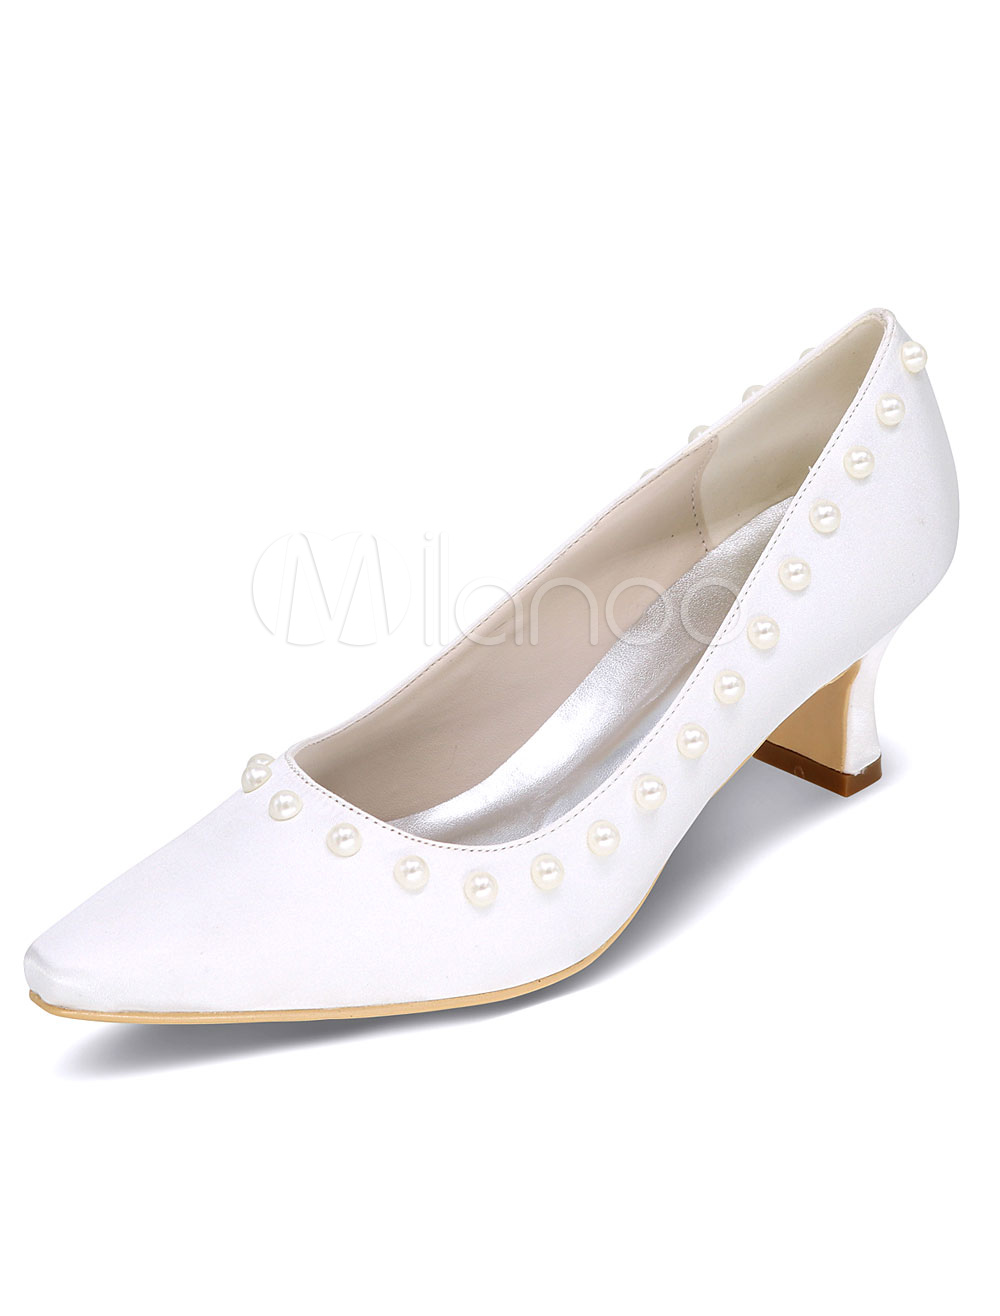 White Wedding Shoes High Heel Pearls Elegant Satin Slip On Bridal Shoes